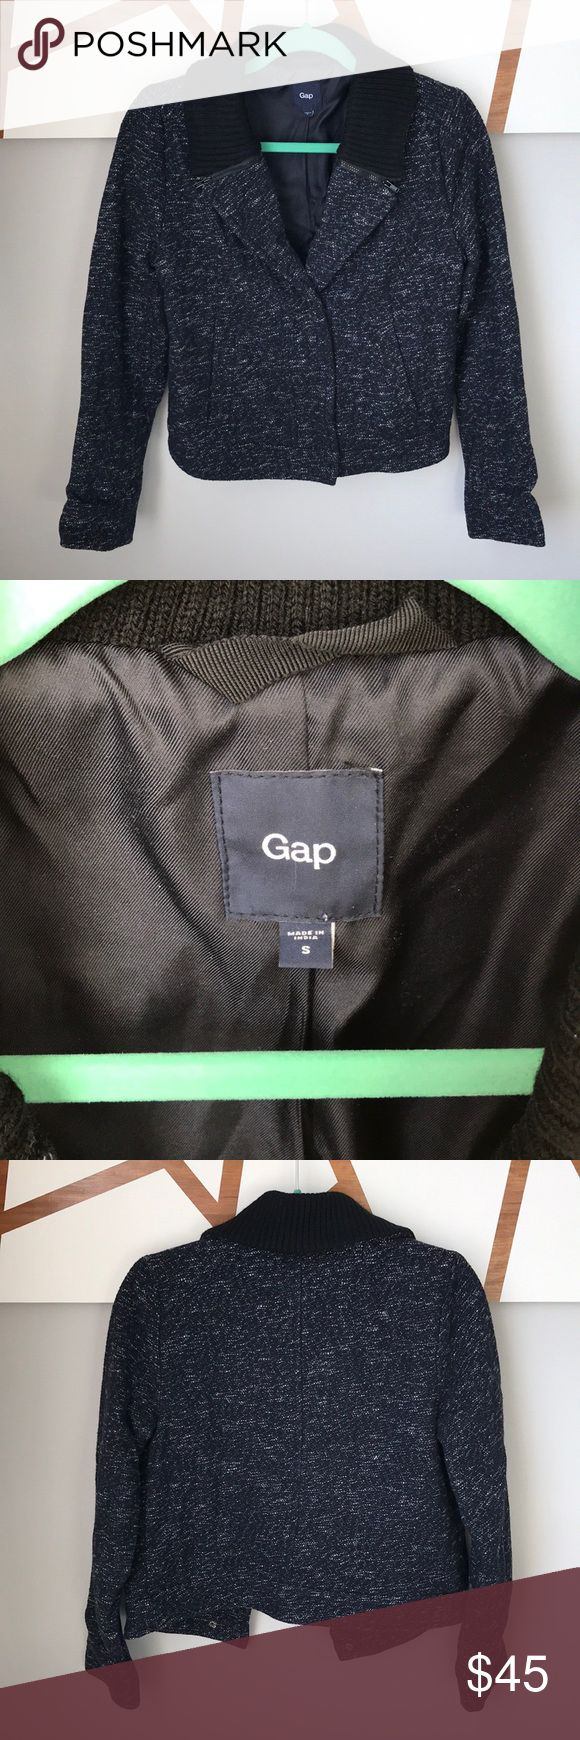 Gap coat size S. Navy/black Gap coat size S. Navy/black, snap button closure, zipper detailing on color. Shell is 47% wool. GAP Jackets & Coats